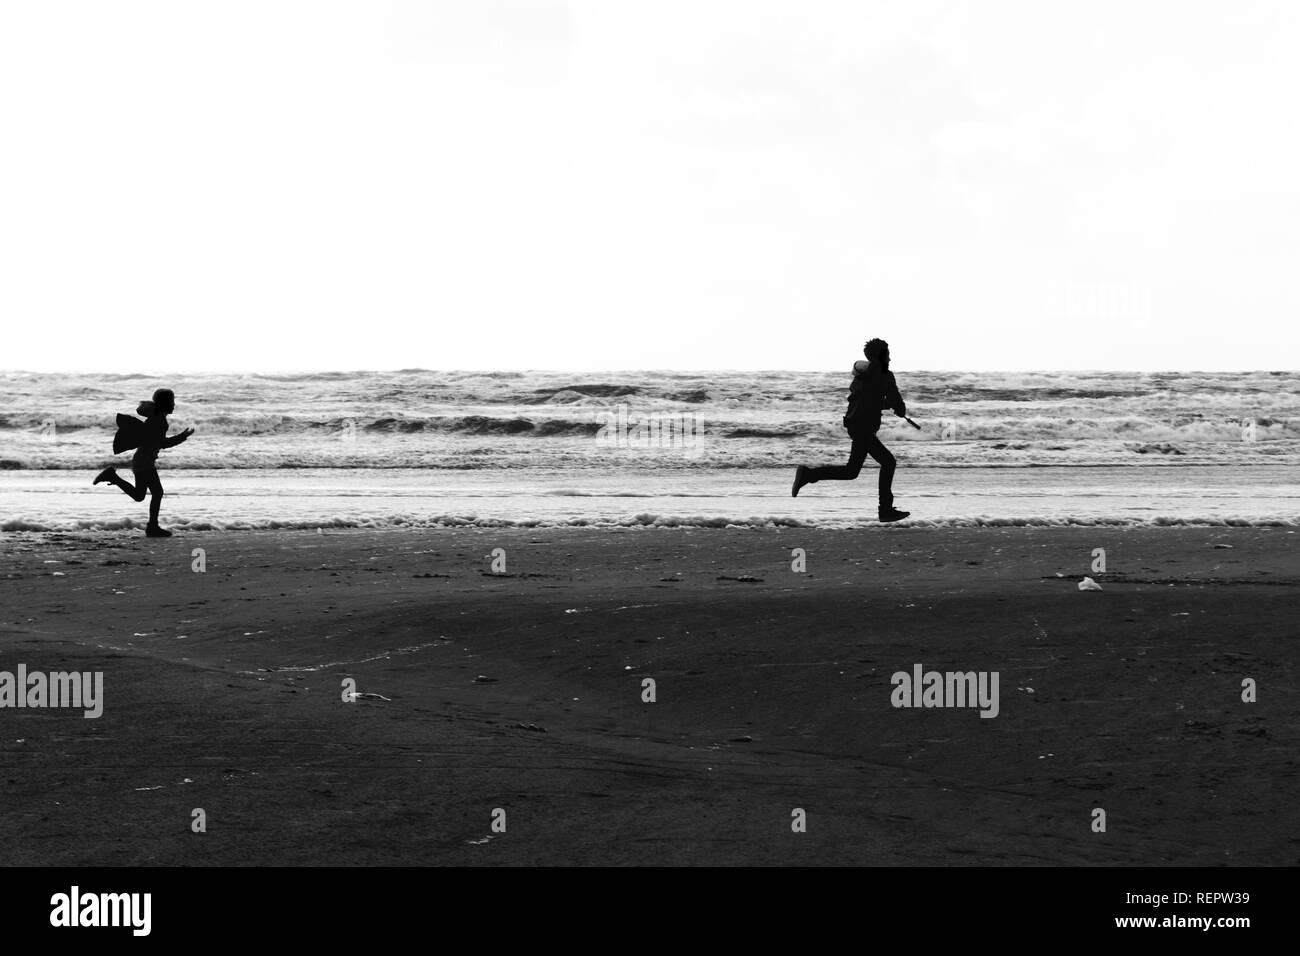 Silhouettes of a brother and a sister running wild and free at the beach. - Stock Image